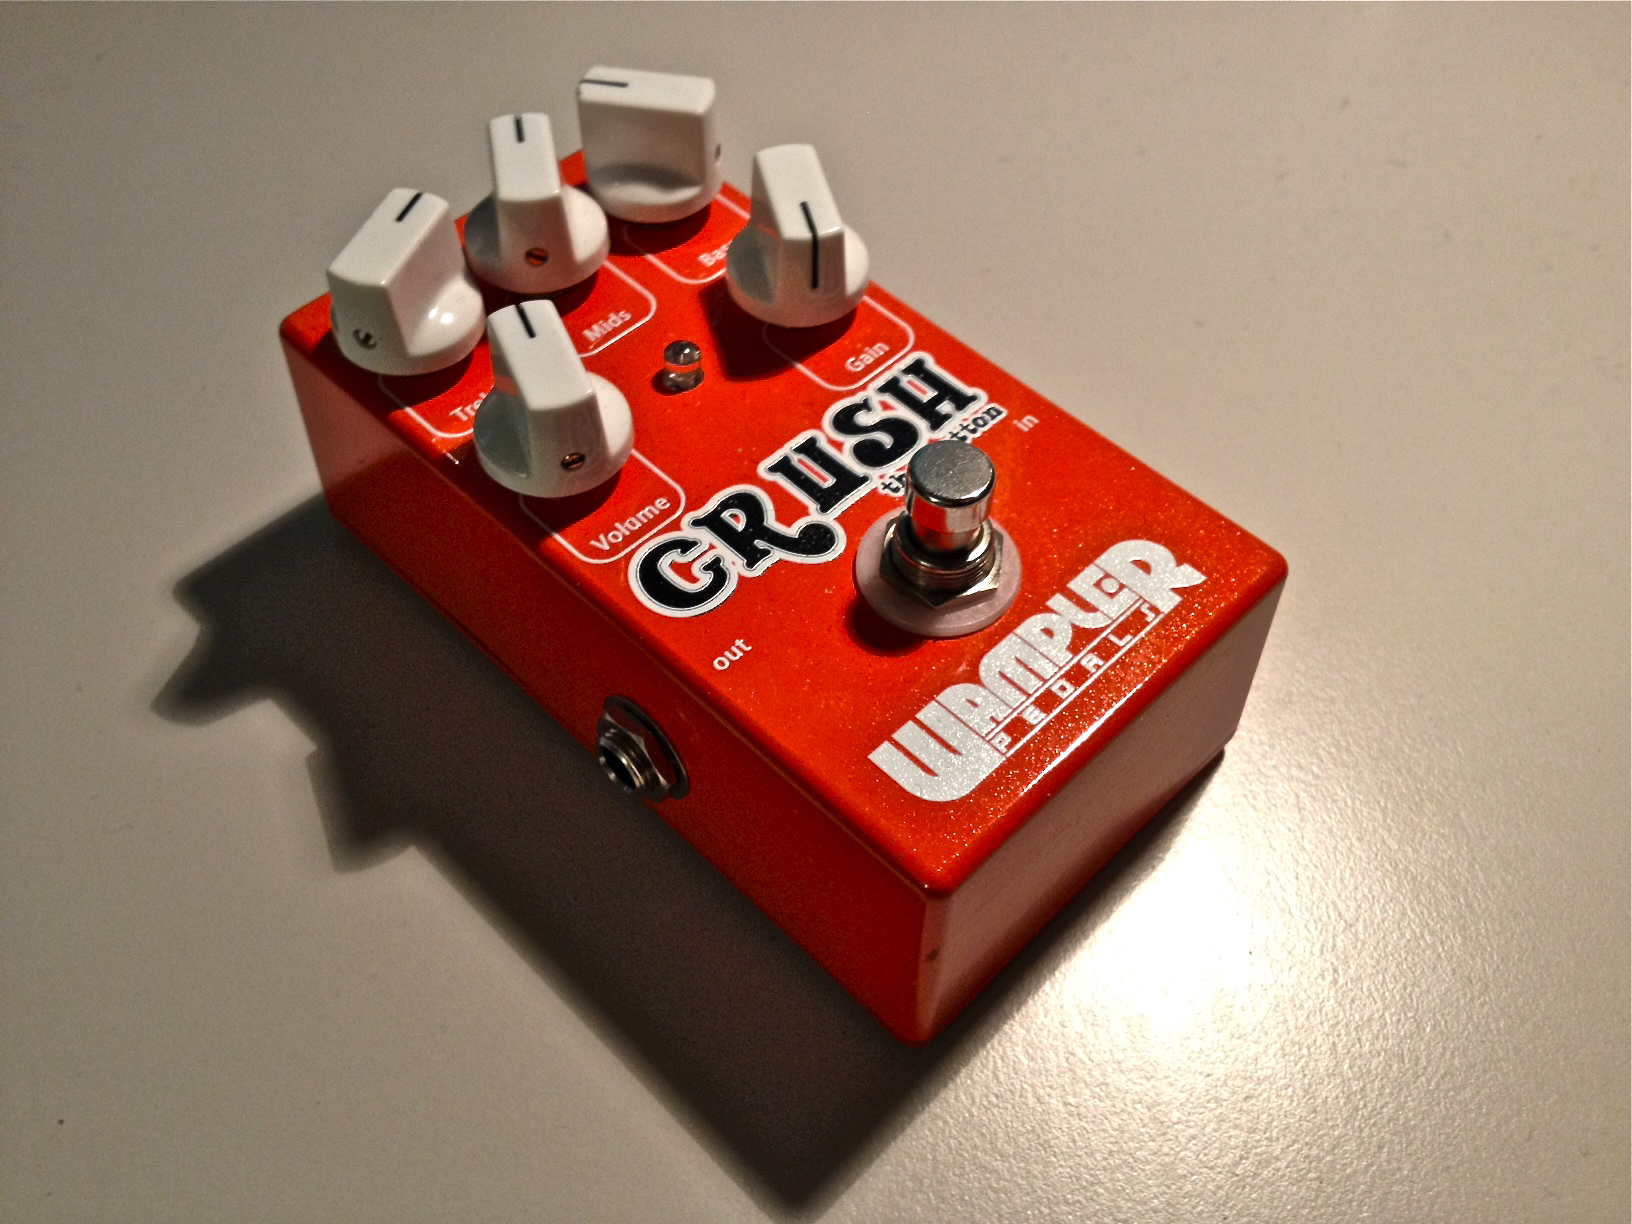 Wampler Crush the button Limited